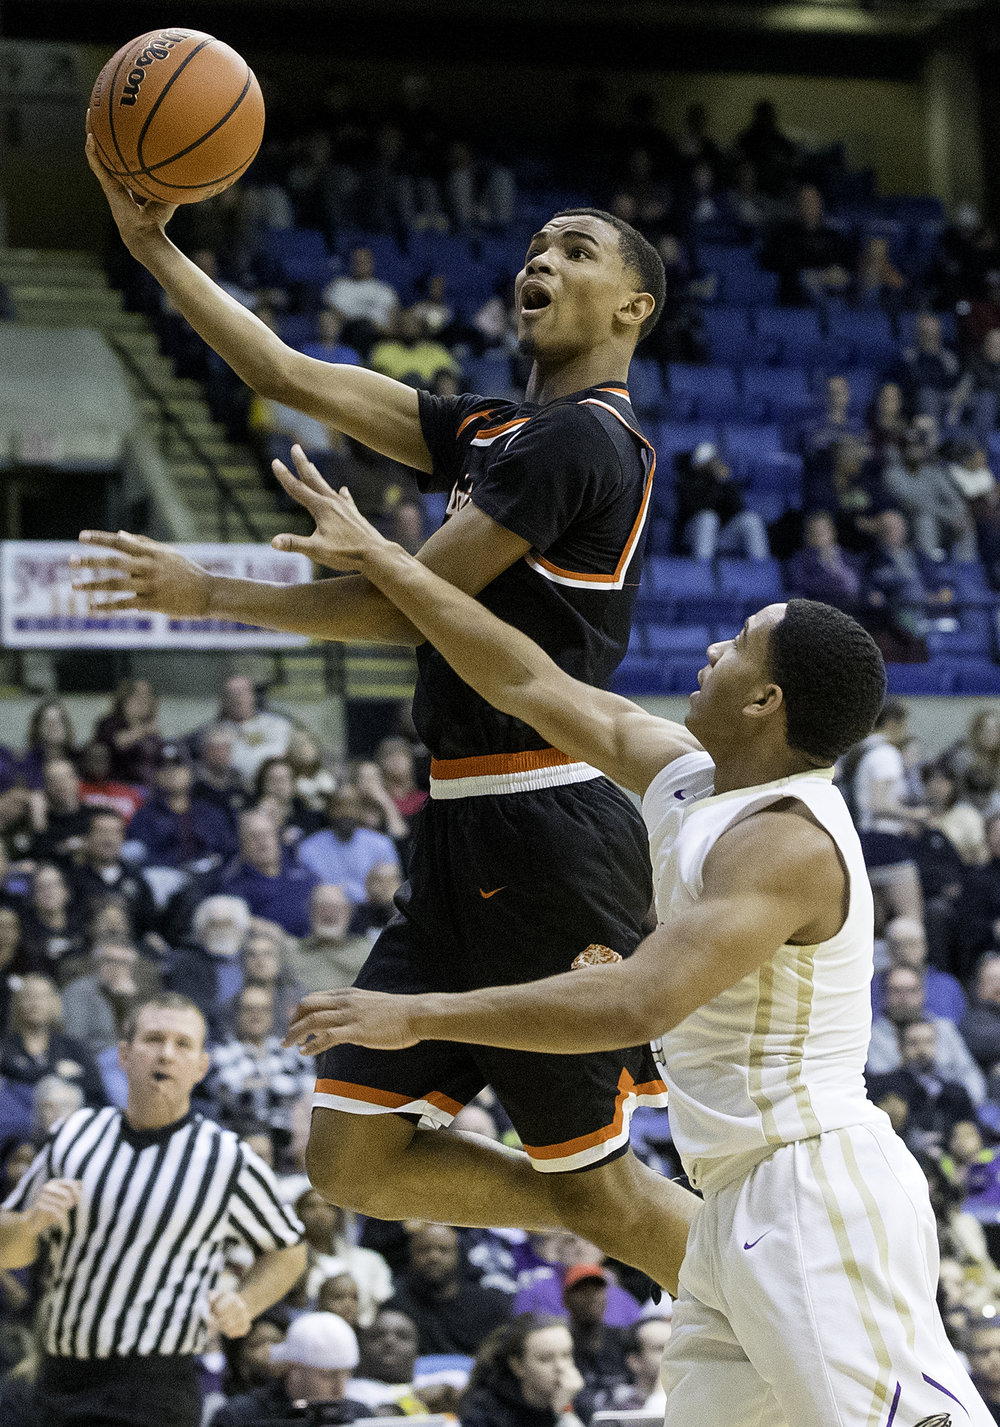 Lanphier's Cardell McGee puts in a shot in front of Sacred Heart-Griffin's Spencer Redd during the Boys City Tournament at the Bank of Springfield Center Friday, Jan. 19, 2018. [Ted Schurter/The State Journal-Register]